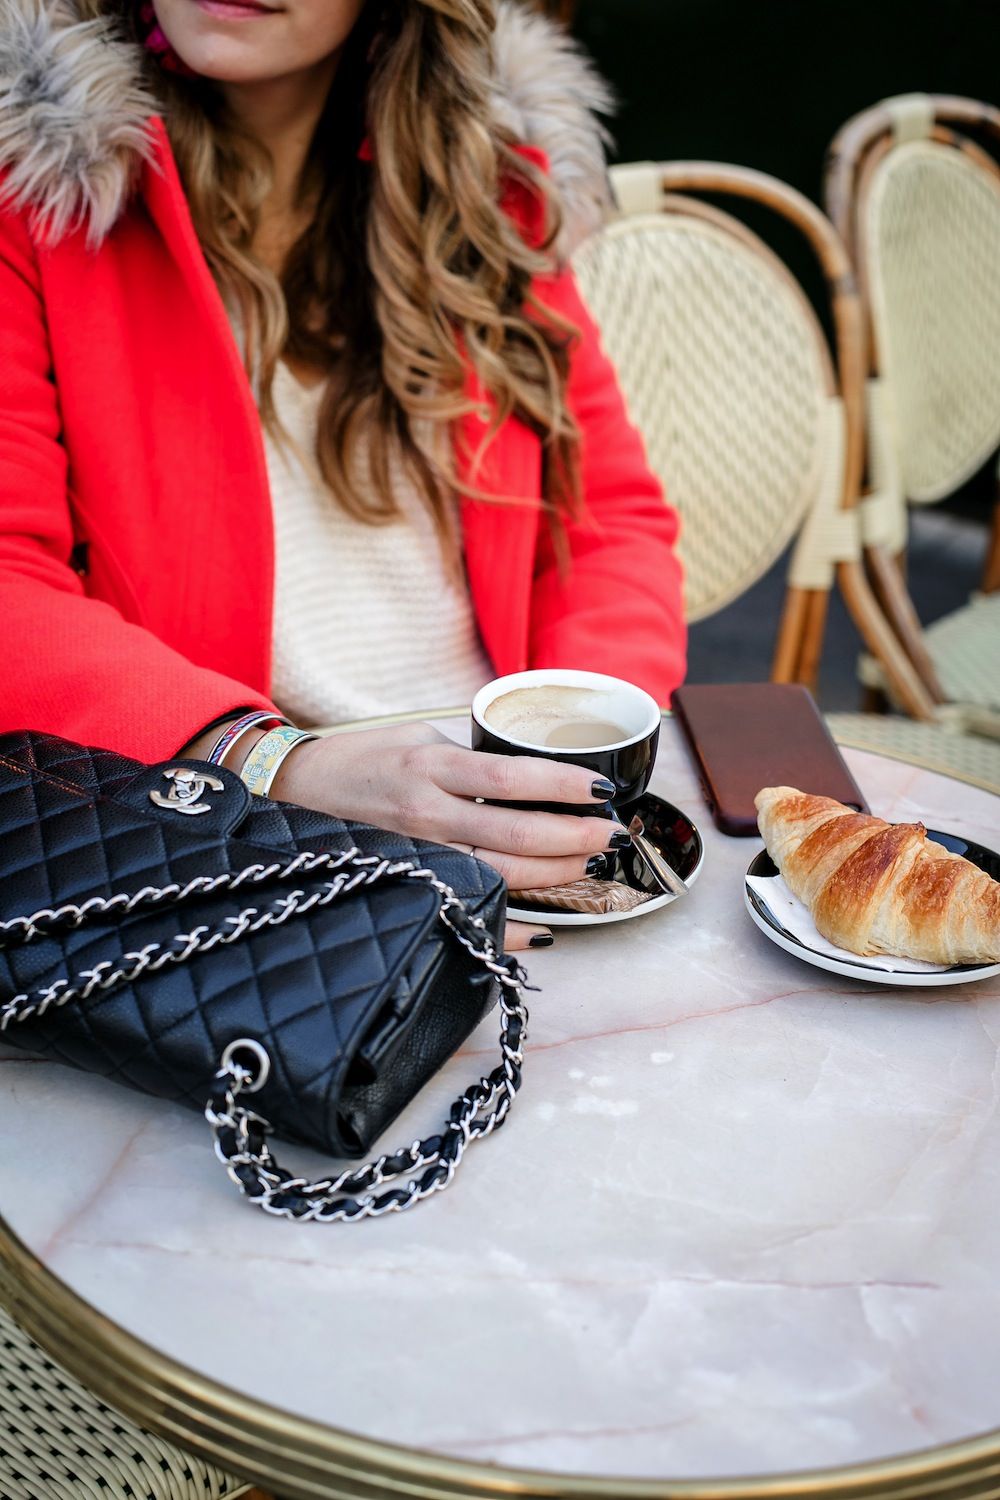 early mornings in paris | cafe de l'epoque paris, chanel classic flap bag, croissant + latte | grace atwood, the stripe